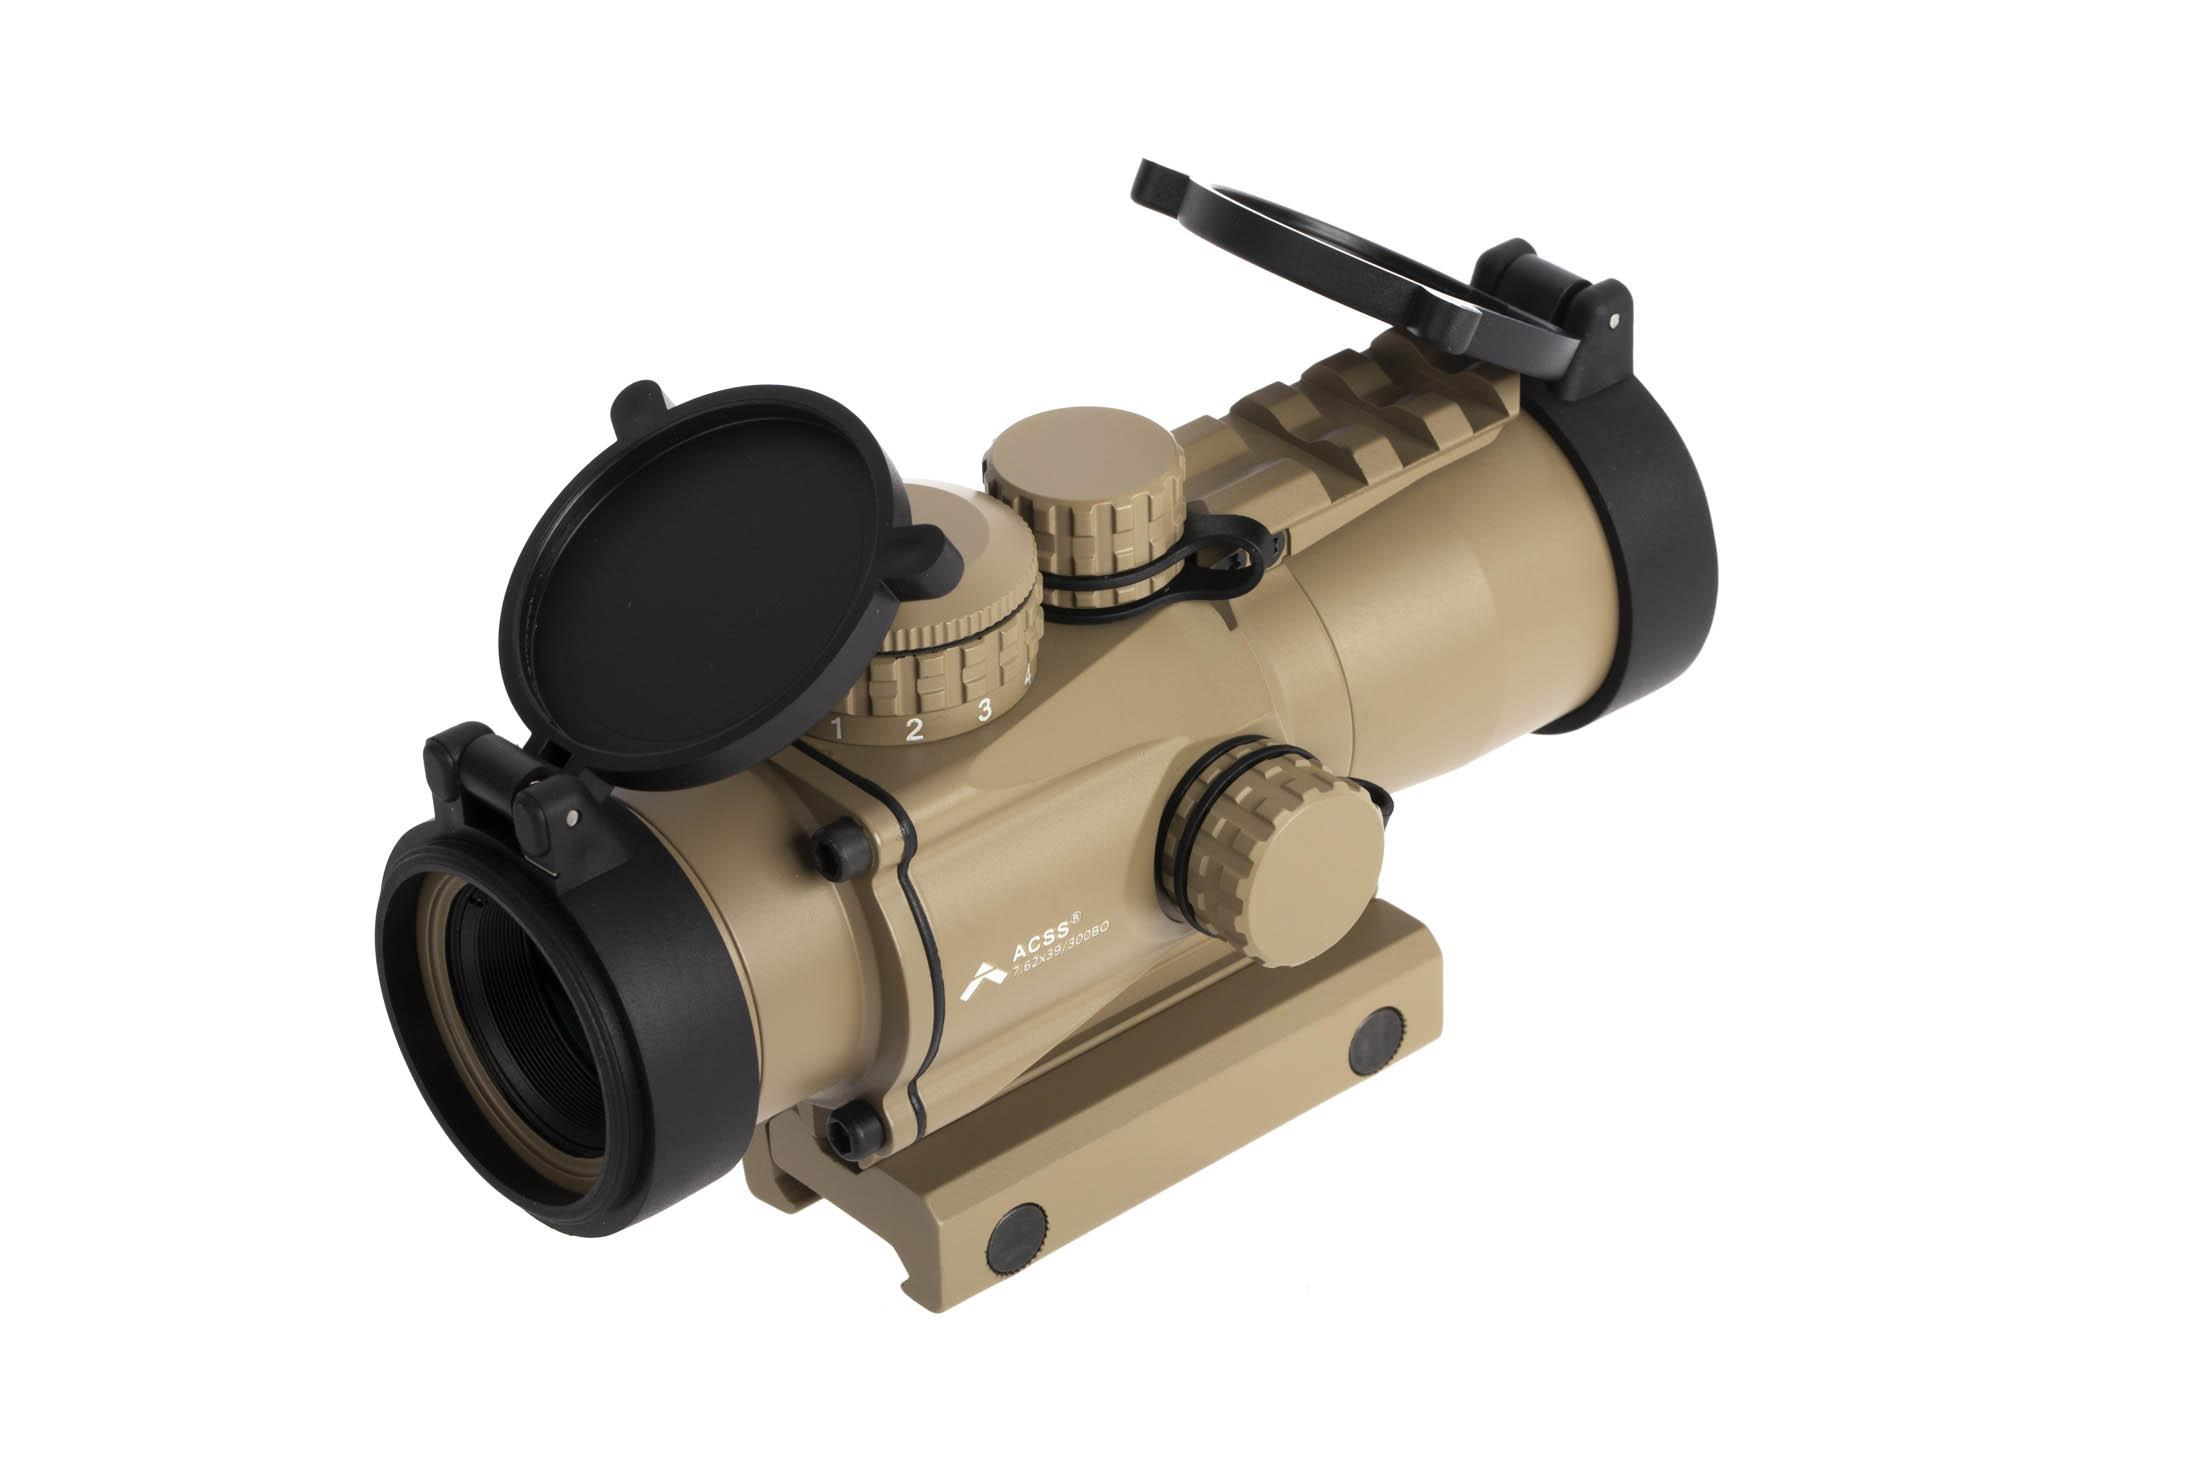 Primary Arms Gen2 3X compact prism scope with ACSS 7.62x29 / 300 BLK CQB reticle has a removable FDE picatinny top rail